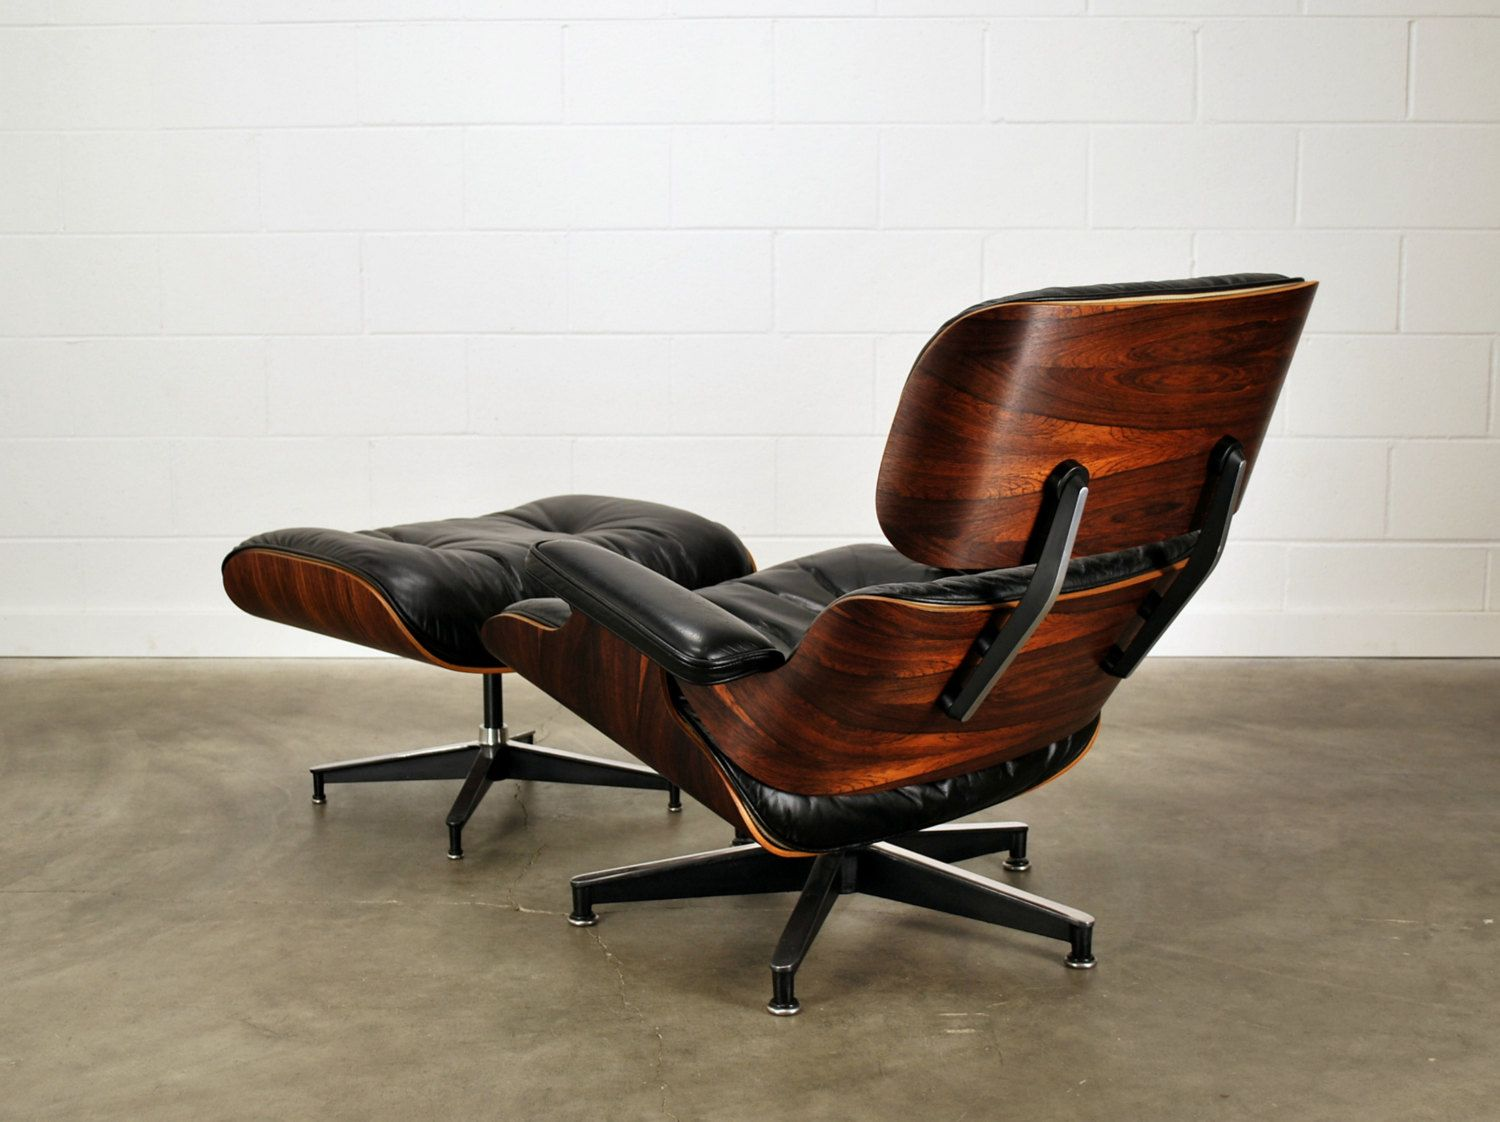 Early Eames Lounge Chair Rosewood And Black Leather Herman Miller Eames Lounge Chair Lounge Chair Chair Design Modern